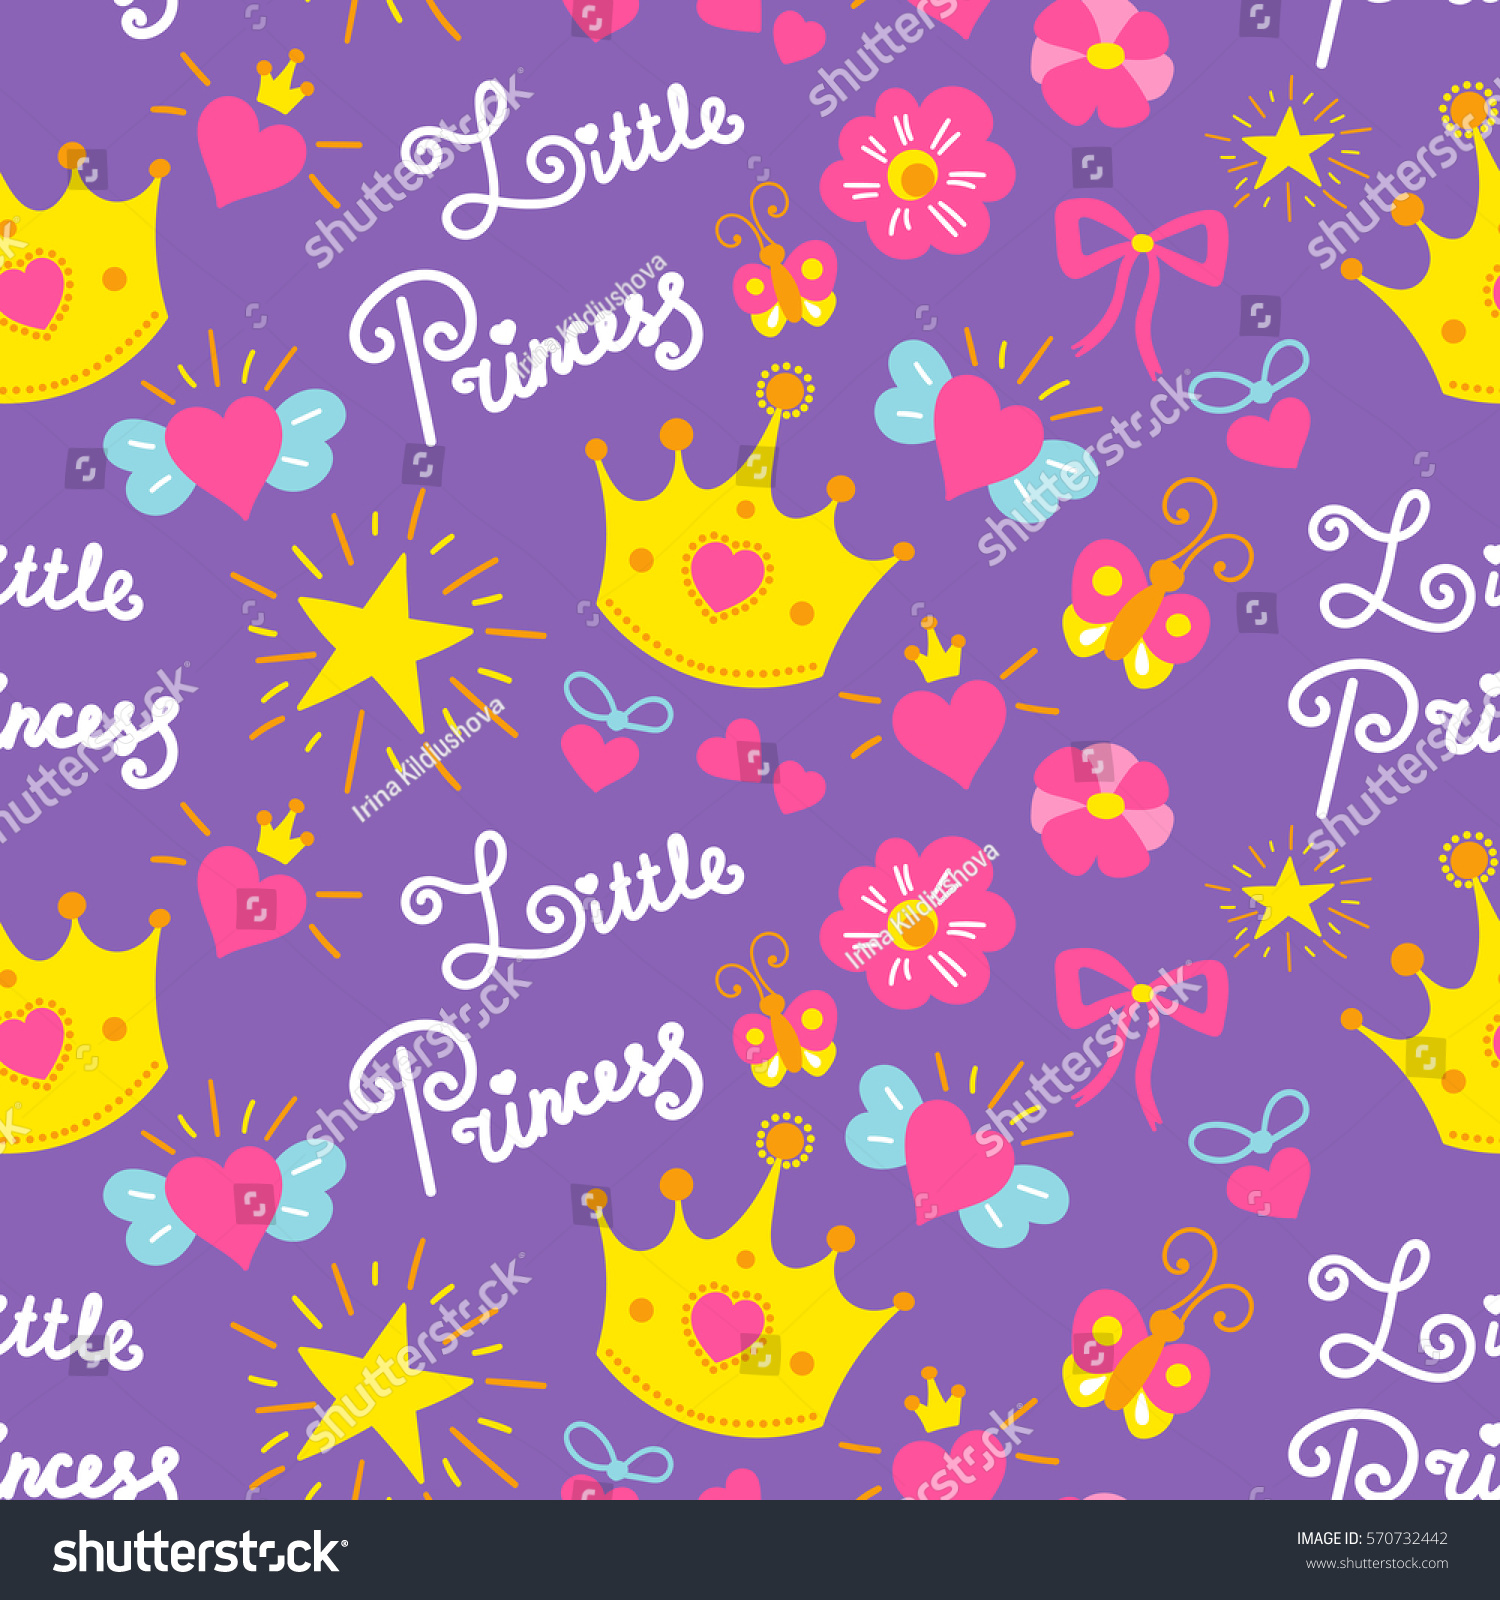 stock-vector-little-princess-pattern-vector-cute-girl -background-for-template-birthday-card-baby-shower-570732442.jpg